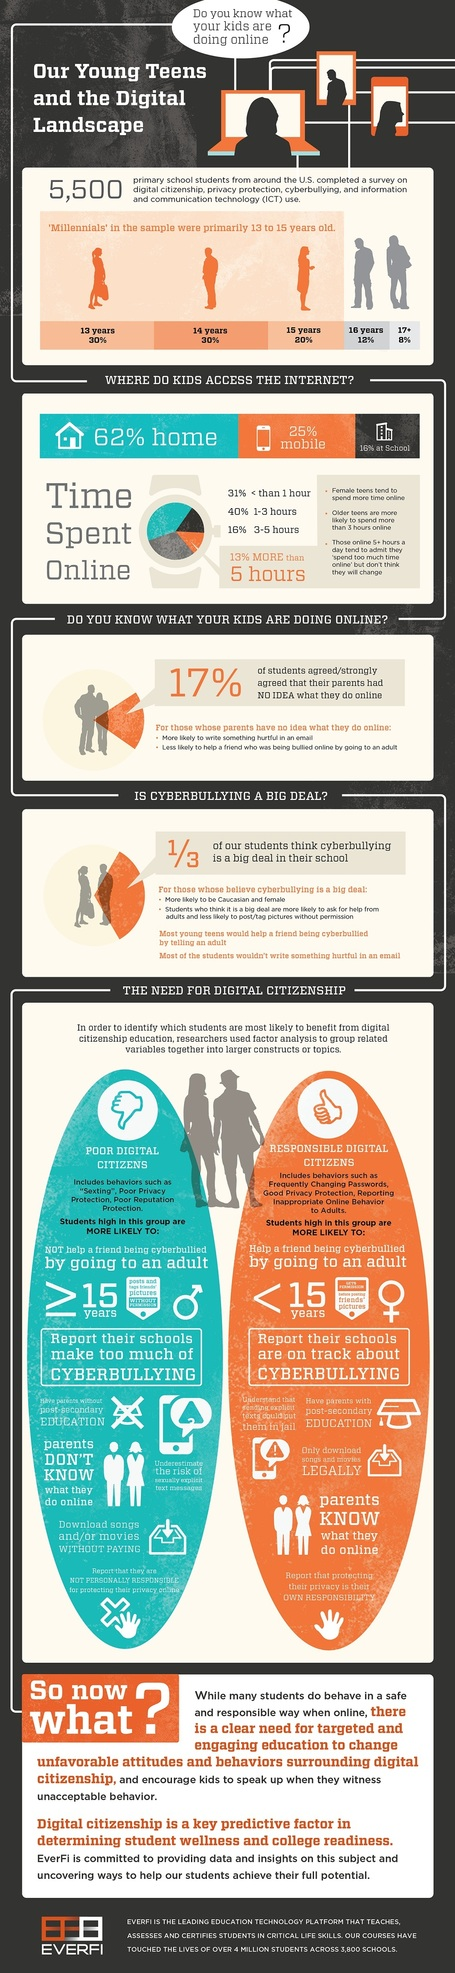 Why Kids Must Be Taught Digital Manners Infographic | Web 2.0 for juandoming | Scoop.it